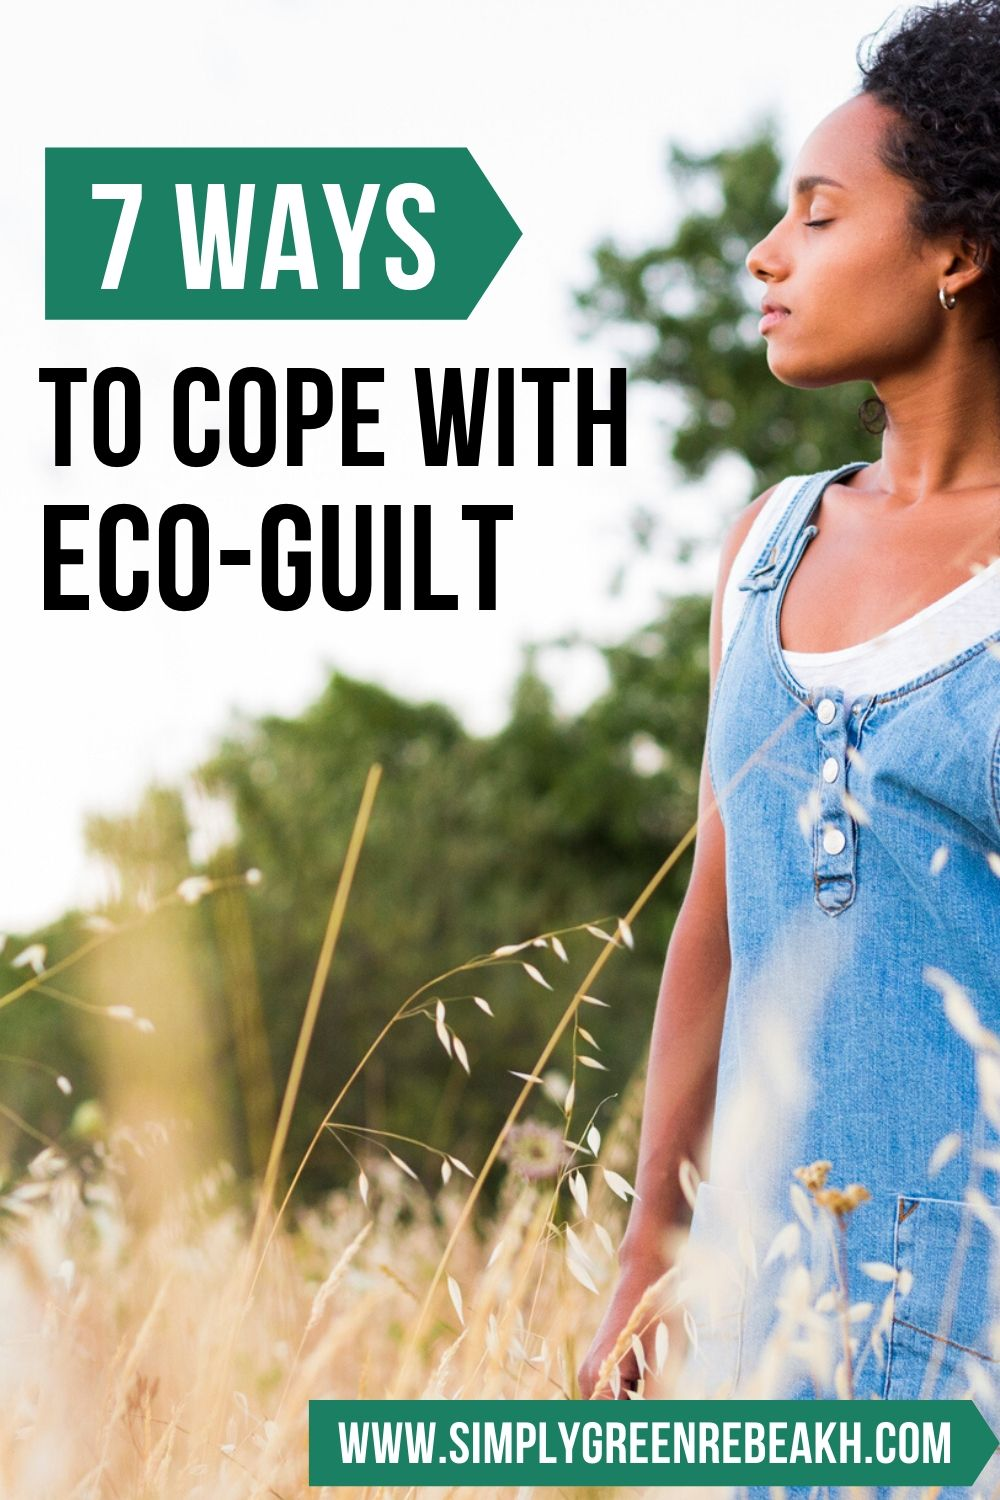 how to cope with eco-guilt